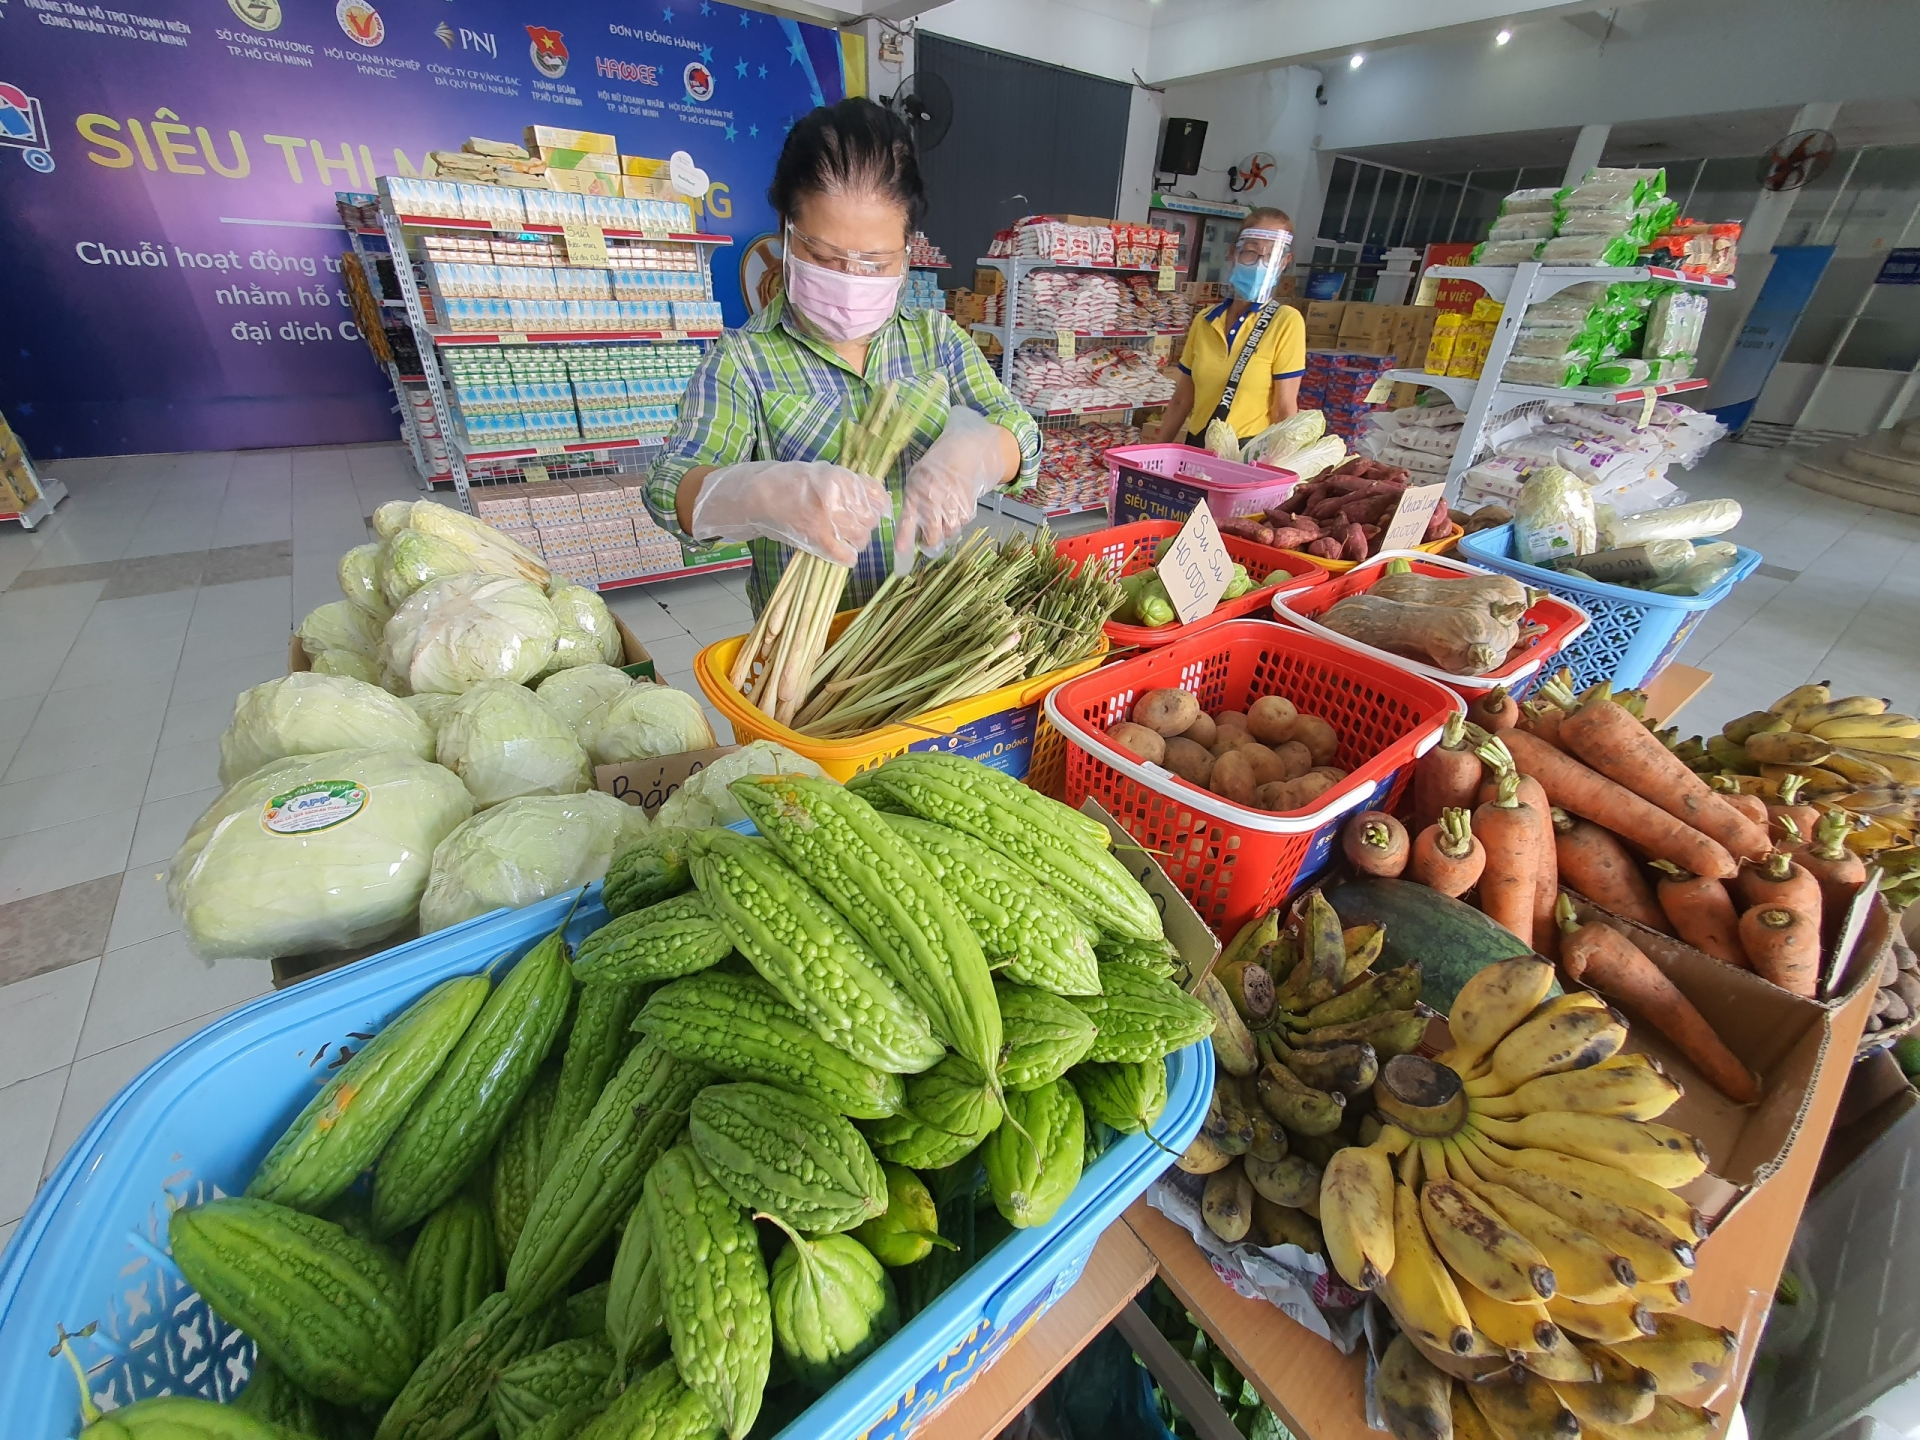 Zero dong supermarkets opened to support the needy in Ho Chi Minh City